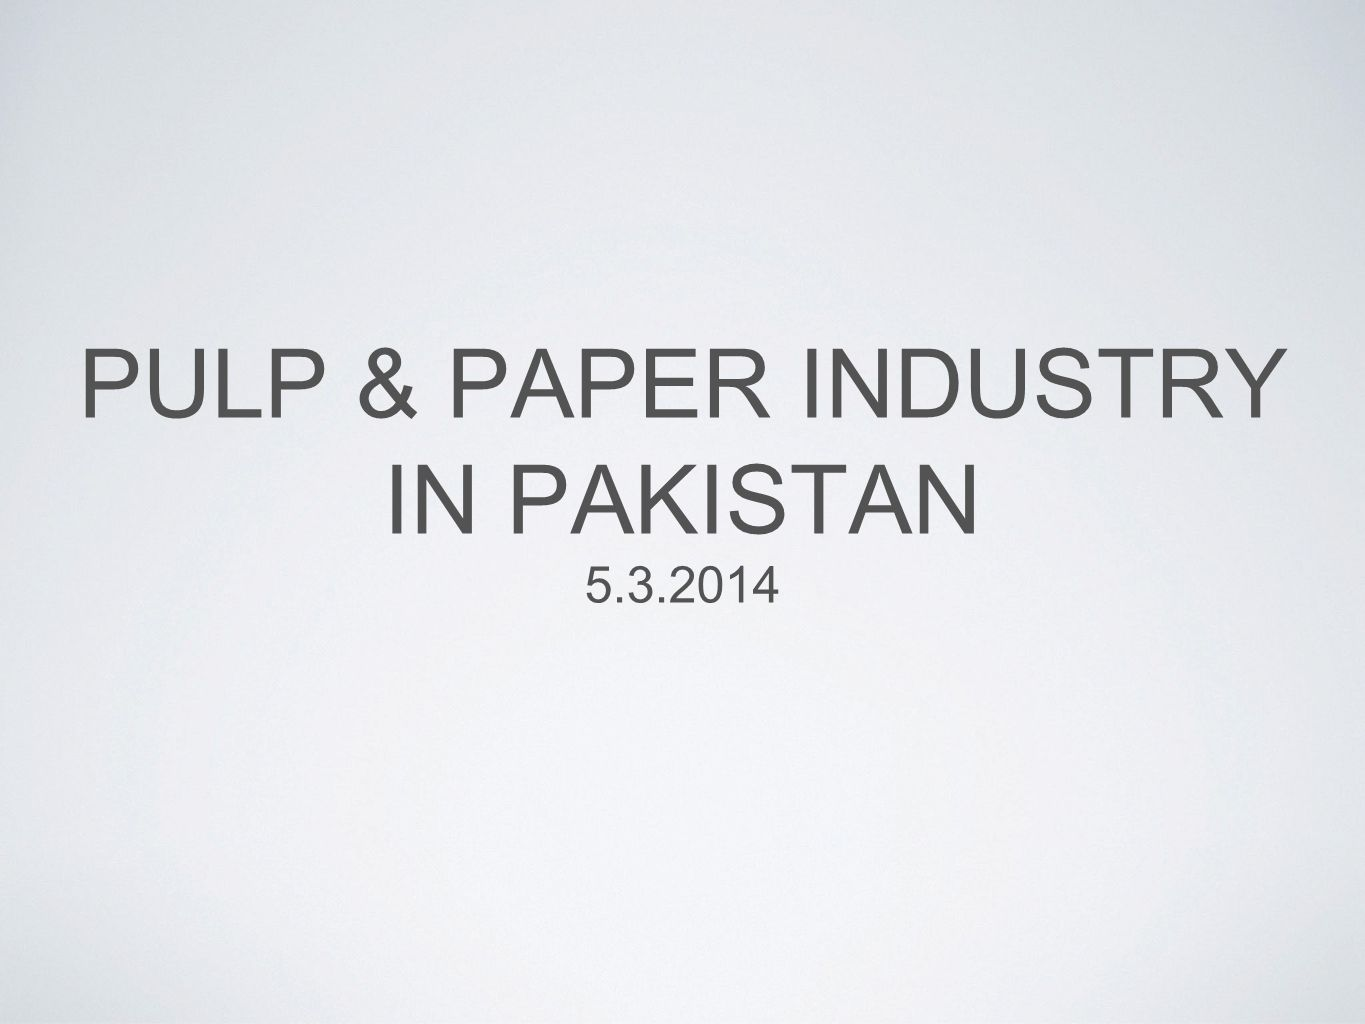 PULP & PAPER INDUSTRY IN PAKISTAN